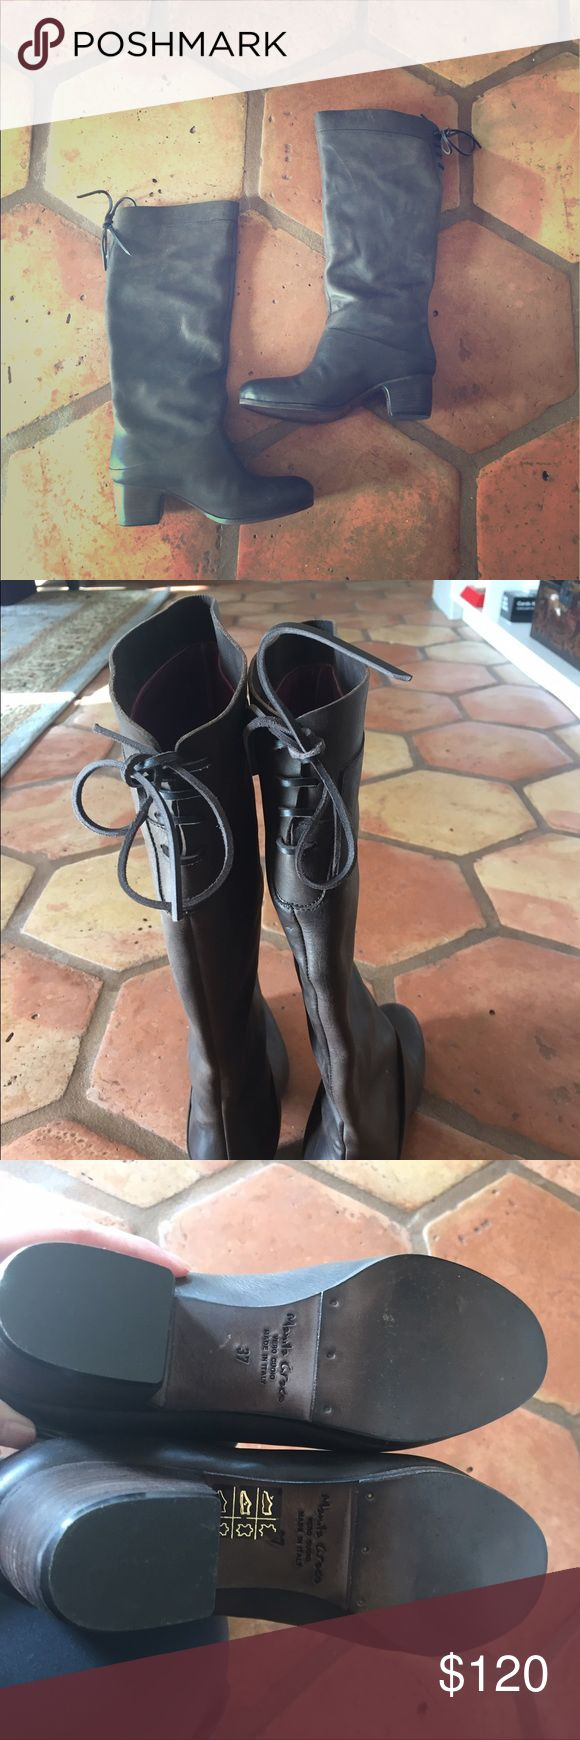 Brown leather boots with bow detail Brand new, never worn brown leather boots. Inside is lined in purple leather. Slip on style. Made in italy. Shoes Heeled Boots